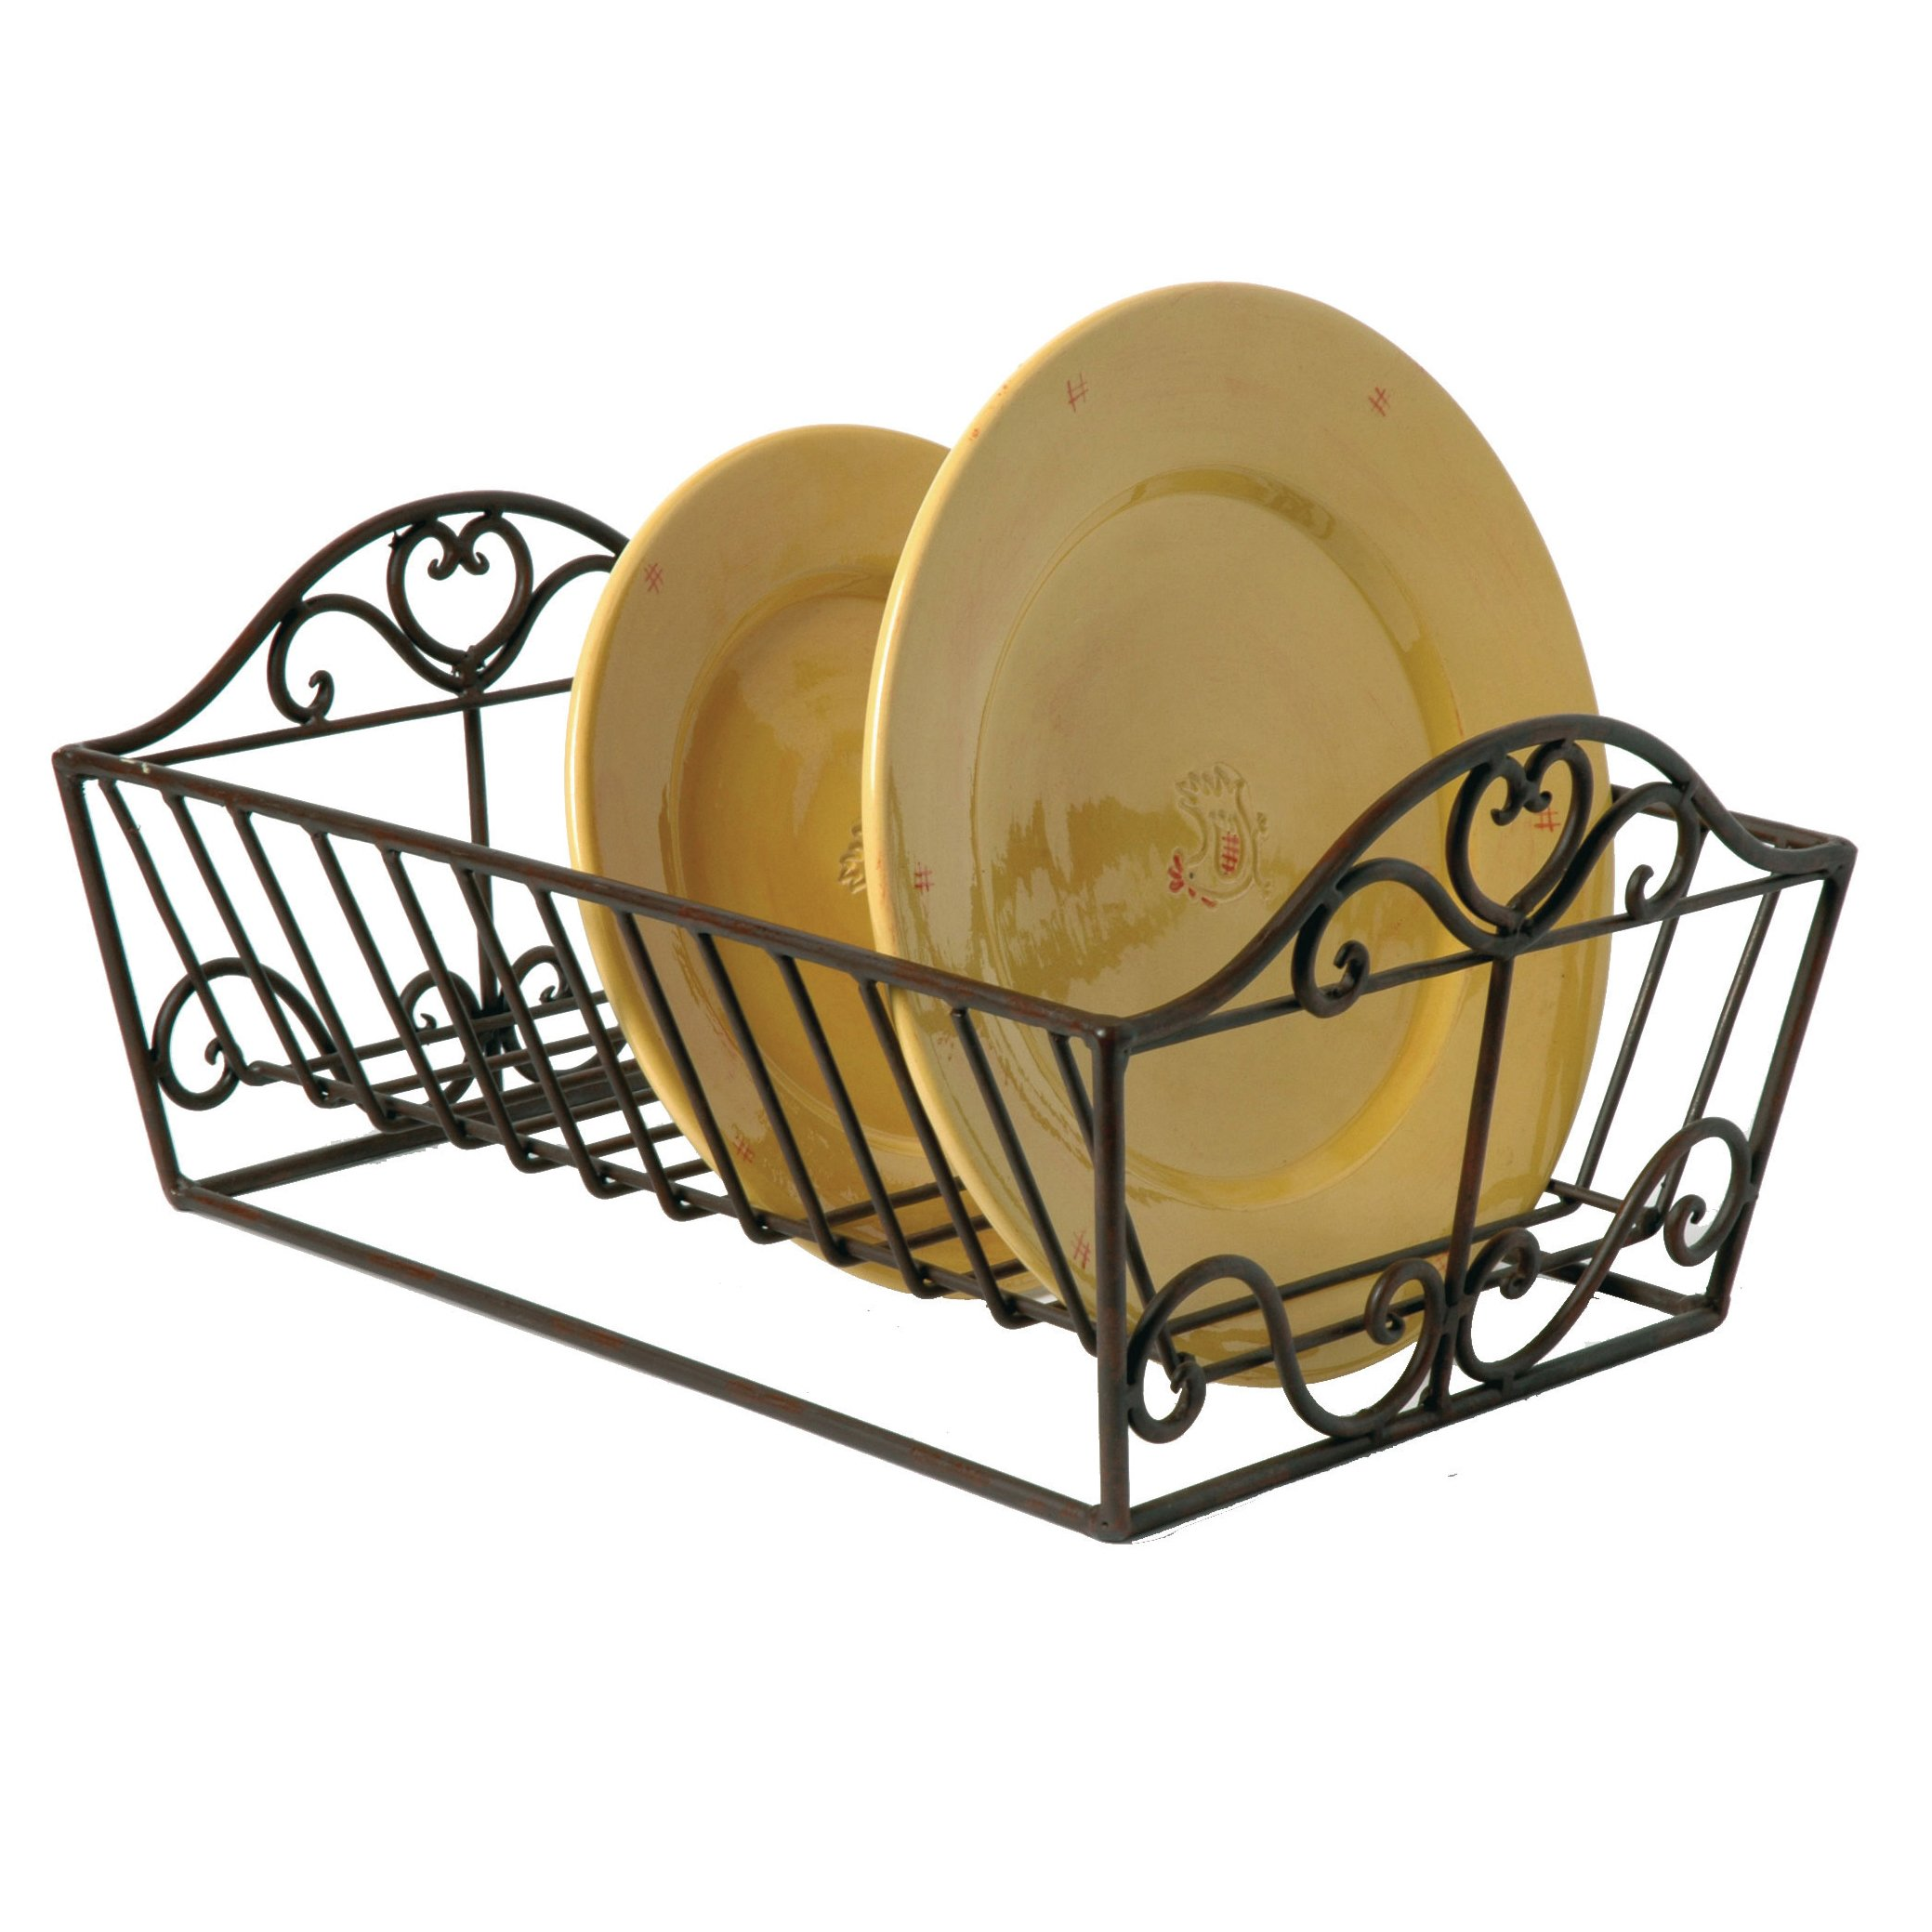 Wrought Iron Heart Plate Dish Drainer Rack 37 x 29 x 19cm by Dibor - French Style Accessories for the Home